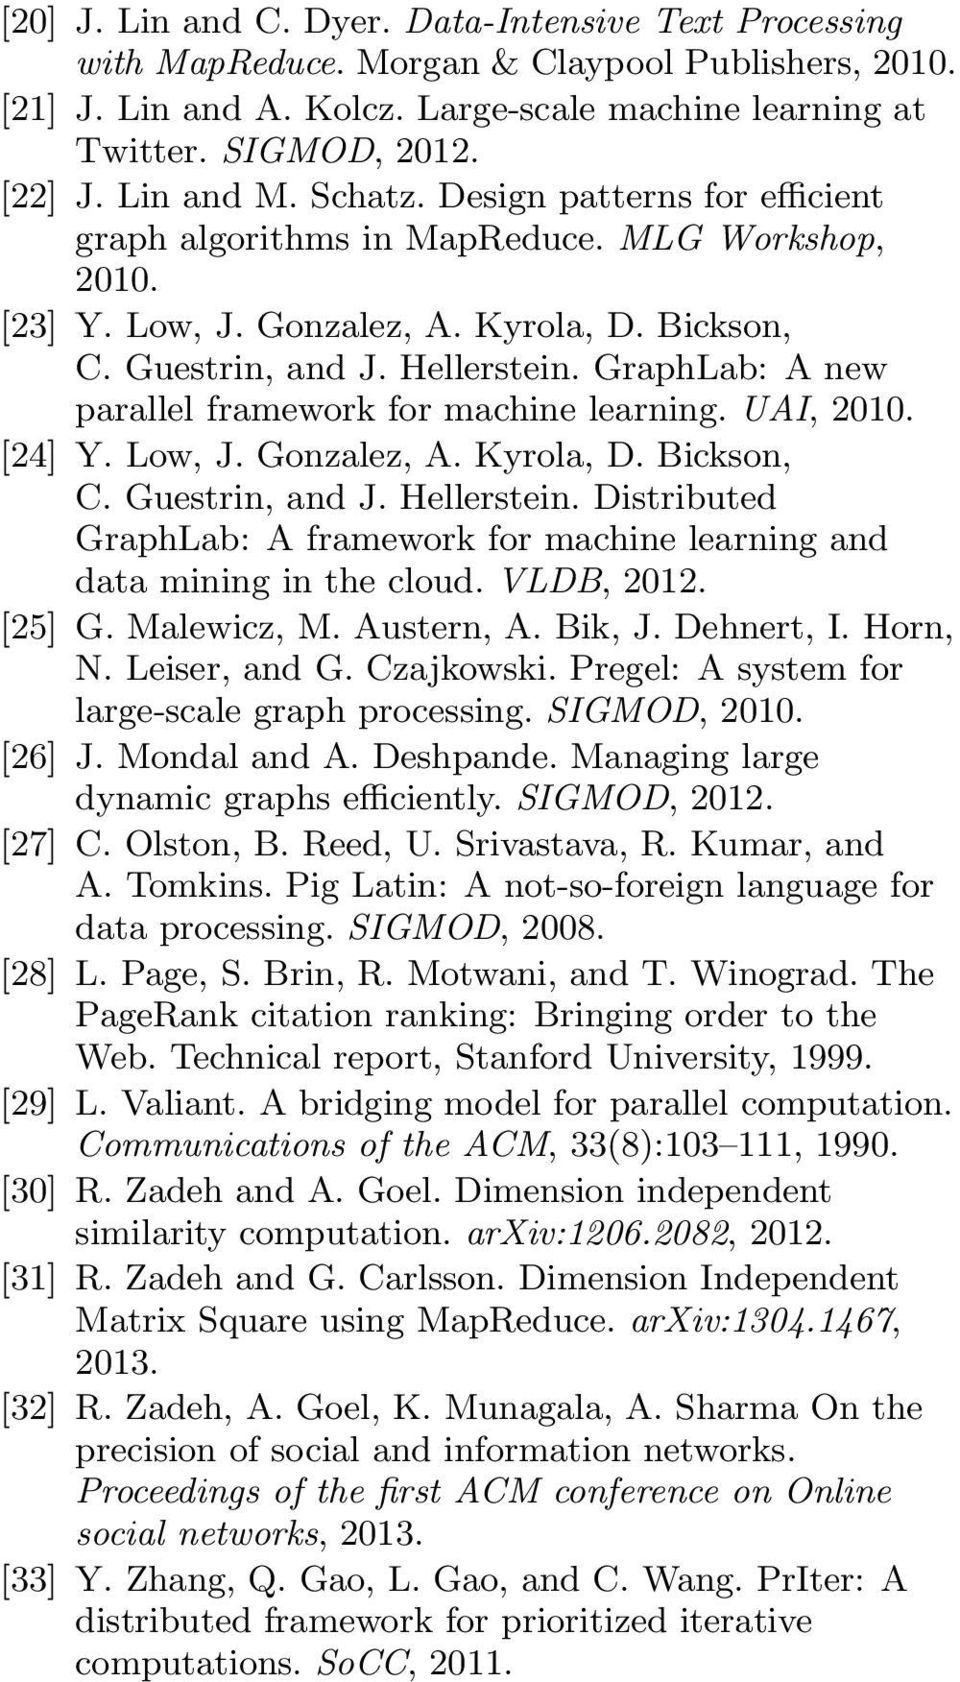 GraphLab: A new parallel framework for machine learning. UAI, 2010. [24] Y. Low, J. Gonzalez, A. Kyrola, D. Bickson, C. Guestrin, and J. Hellerstein.